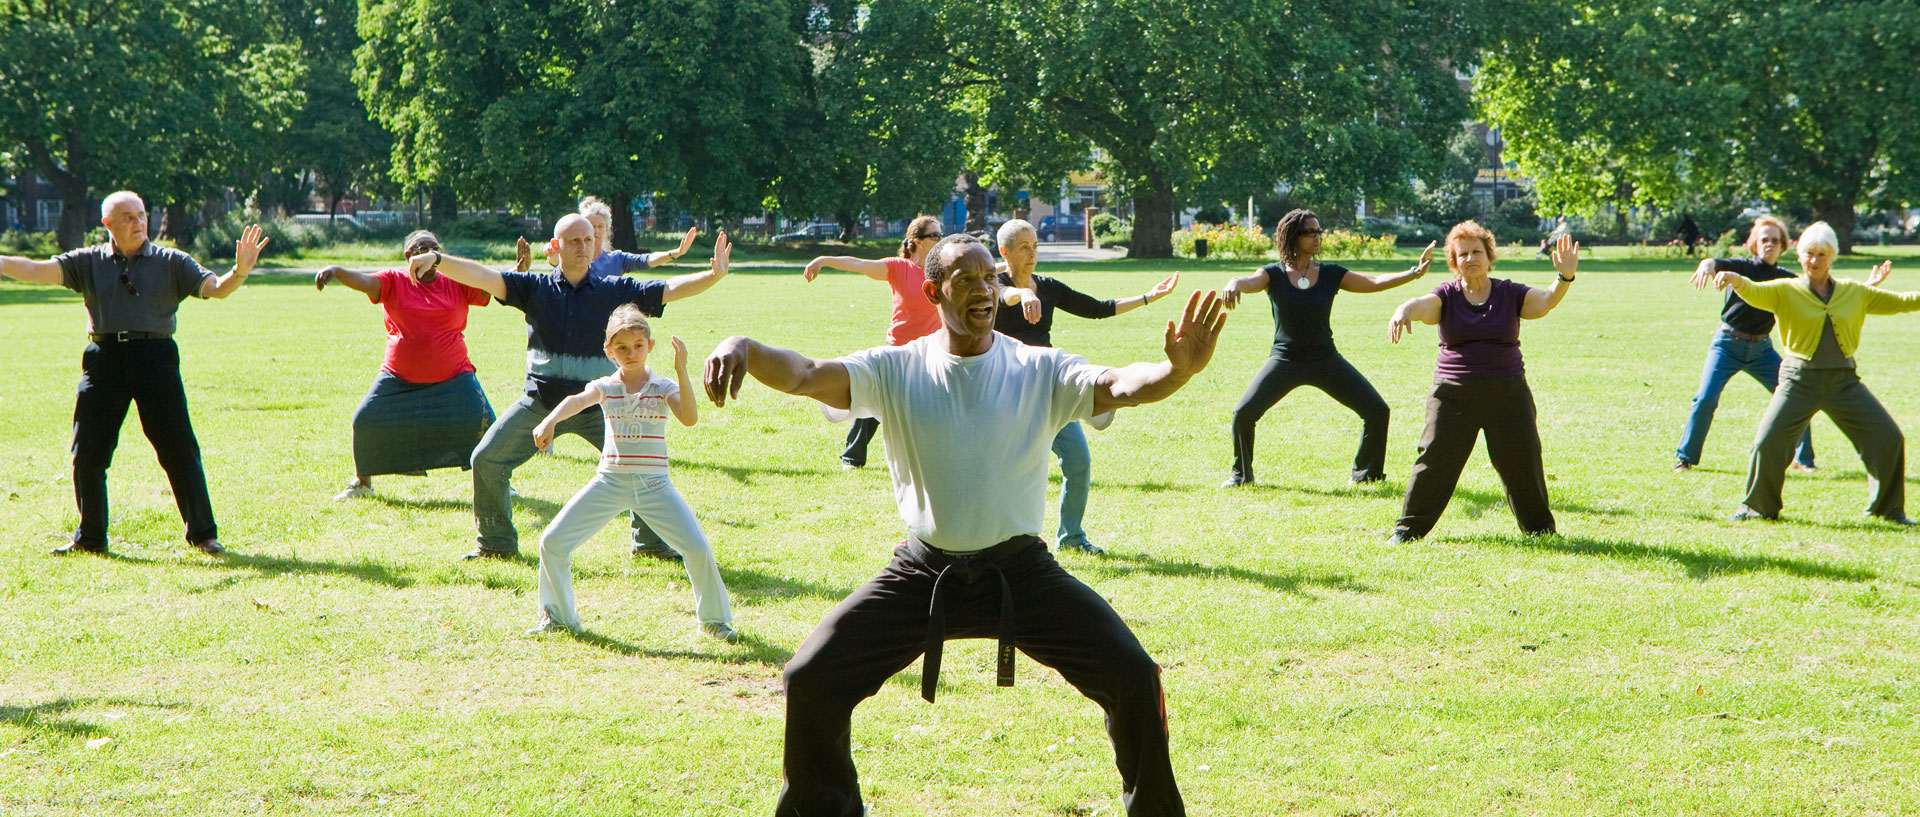 Tai Chi Benefits Your Heart - Consumer Reports